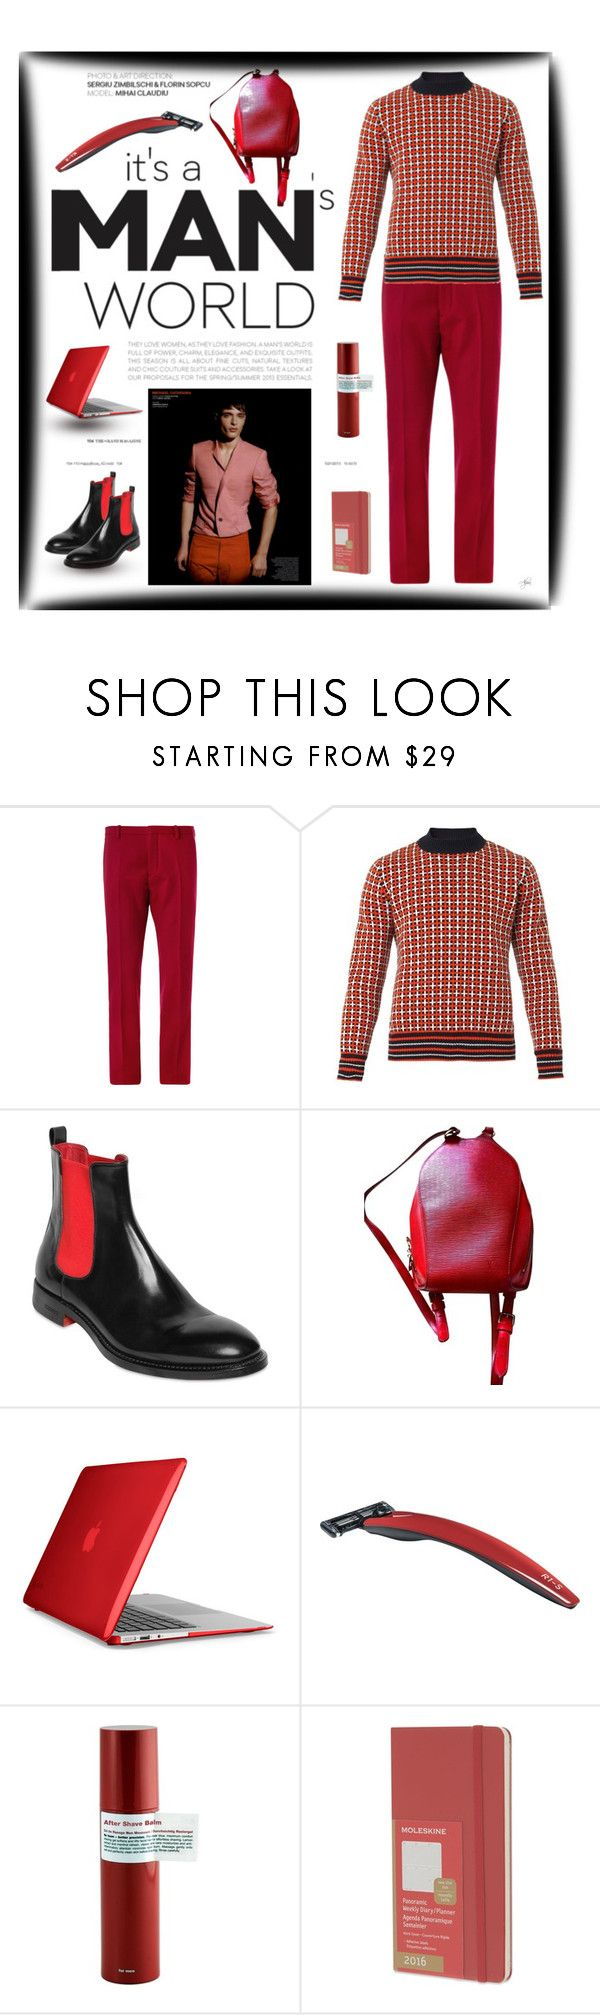 """""""Seeing Red Menswear"""" by alevalepra ❤ liked on Polyvore featuring Jil Sander, Marni, Iceberg, Louis Vuitton, Speck, Bolin Webb, Recipe For Men and Moleskine"""